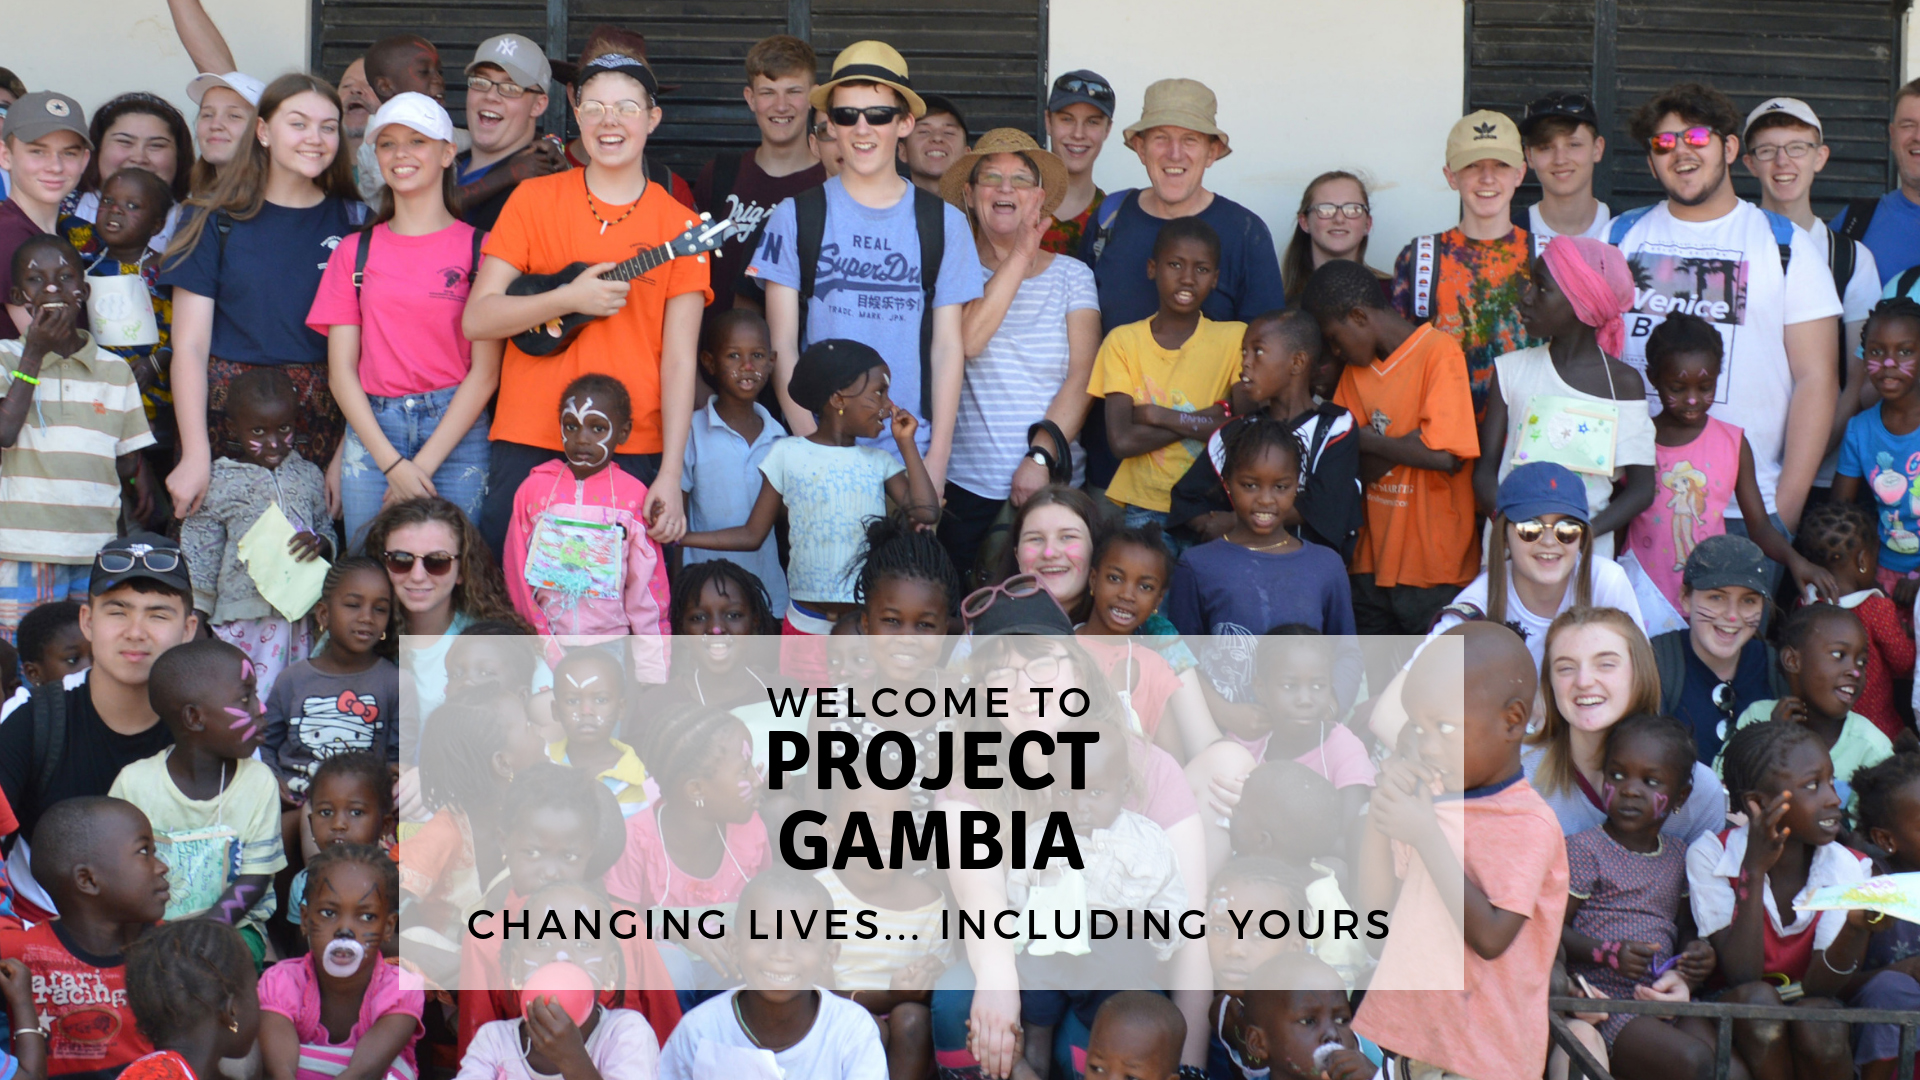 Project Gambia... Changing Lives Including Yours